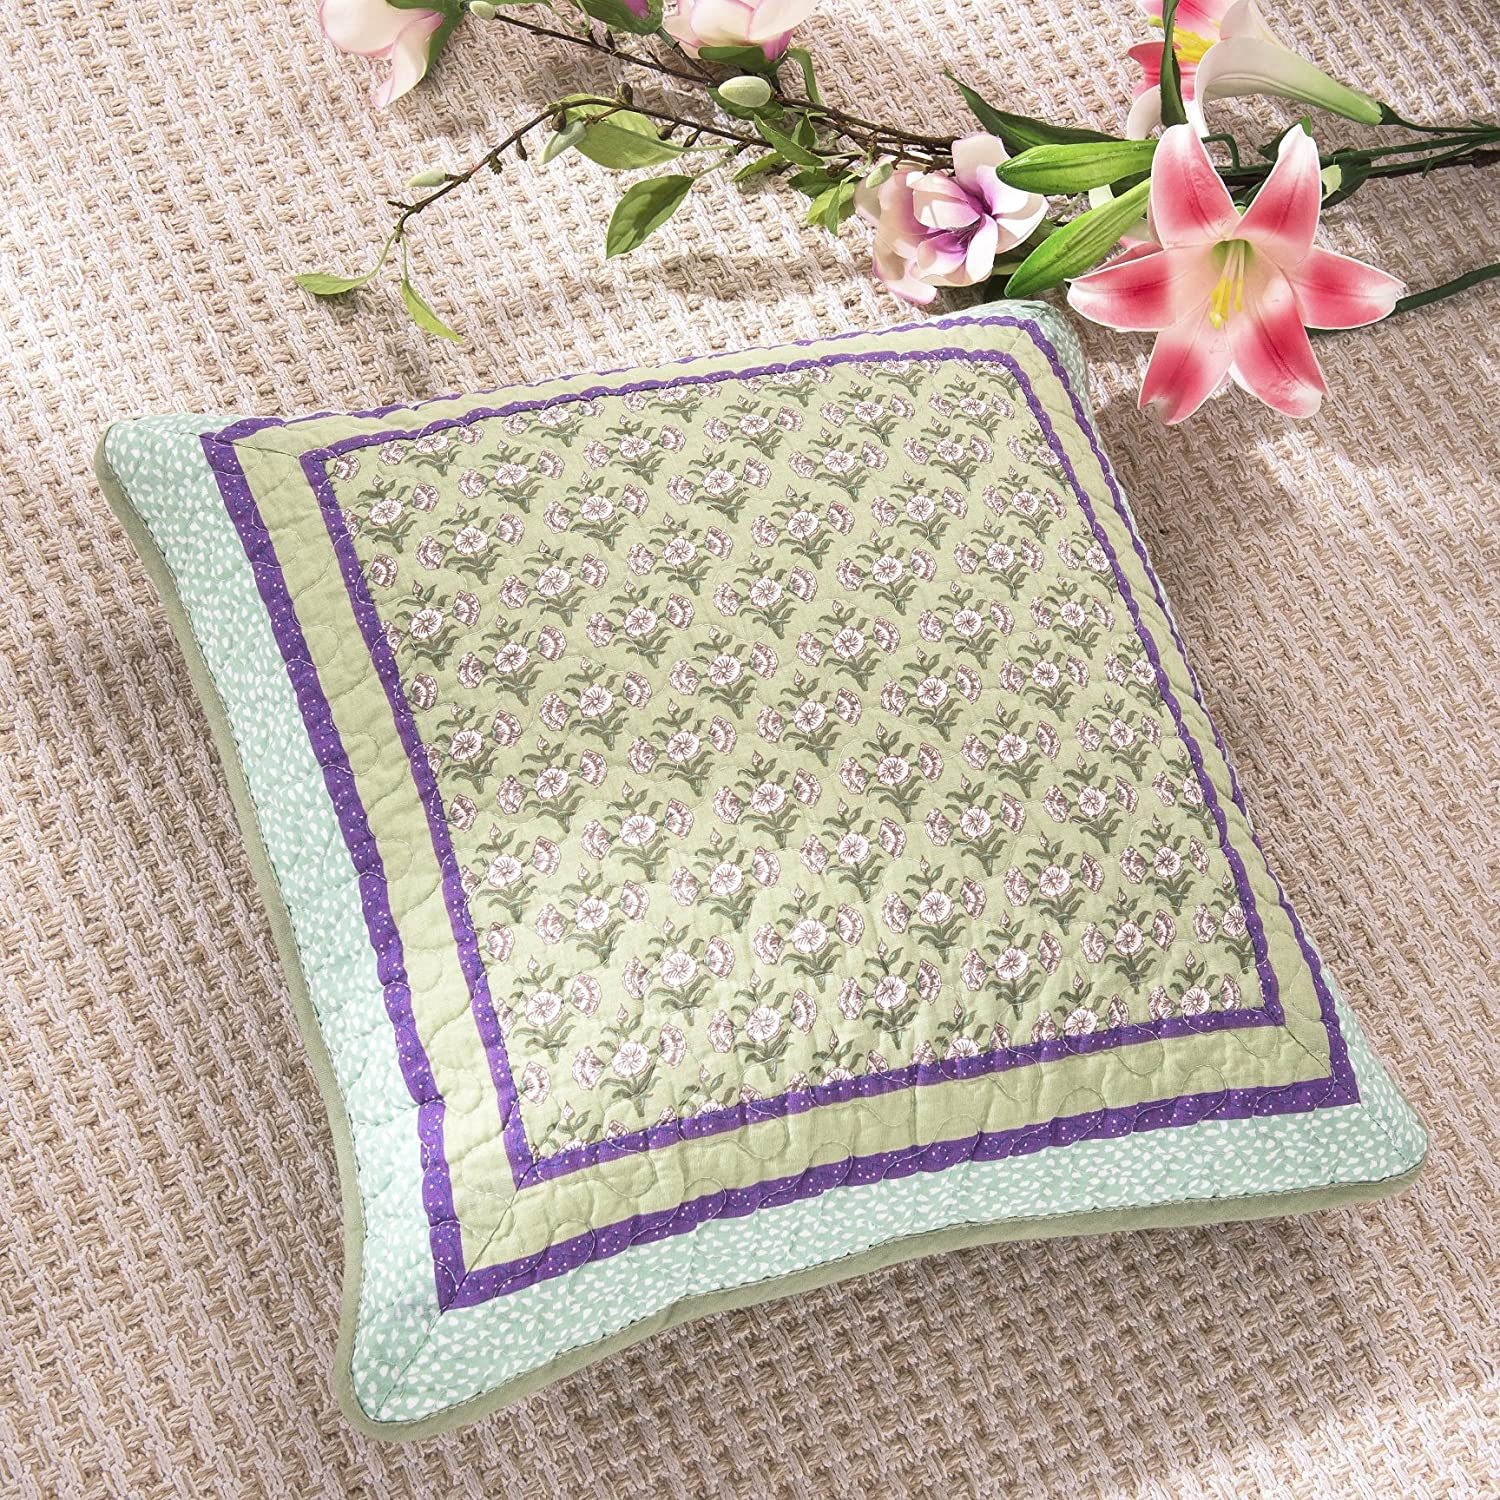 DaDa Bedding Set of Two - Bohemian Frosted Pastel Gardenia Patchwork - Quilted Square Pillow Cushion Covers - Bright Vibrant Floral Paisley Blue Lavender Green